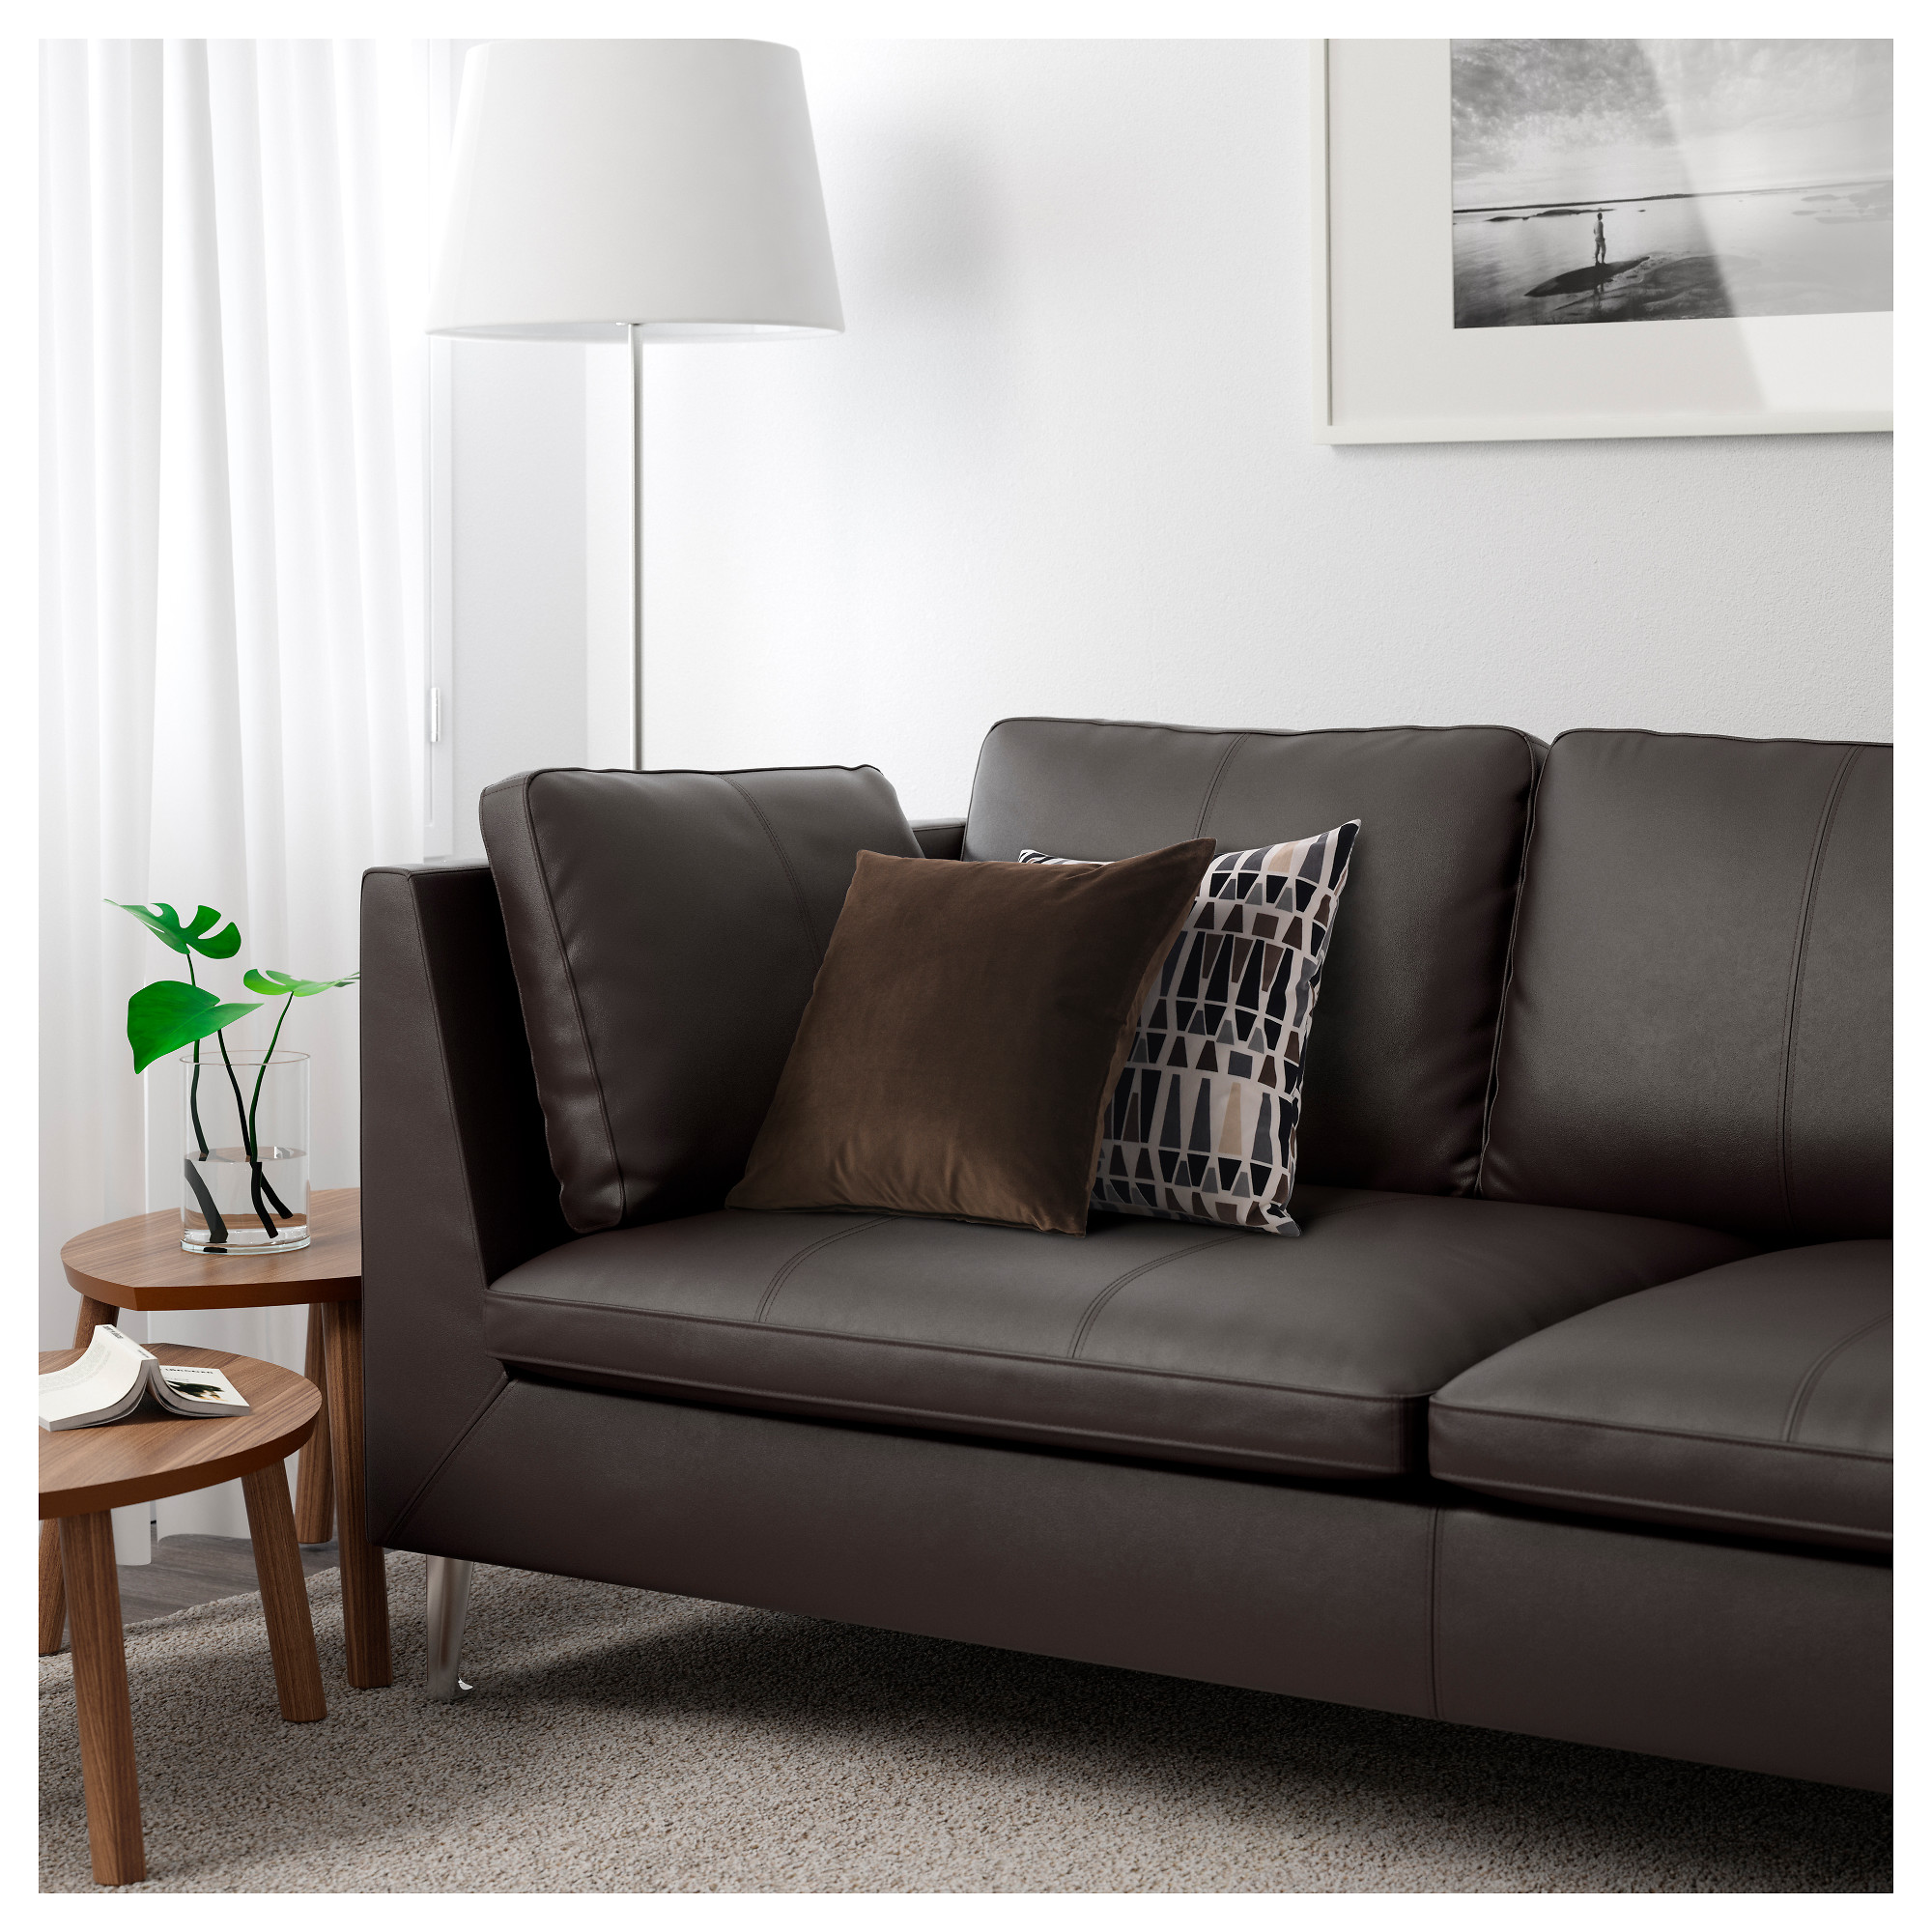 Exceptionnel STOCKHOLM Sofa   Seglora Natural   IKEA